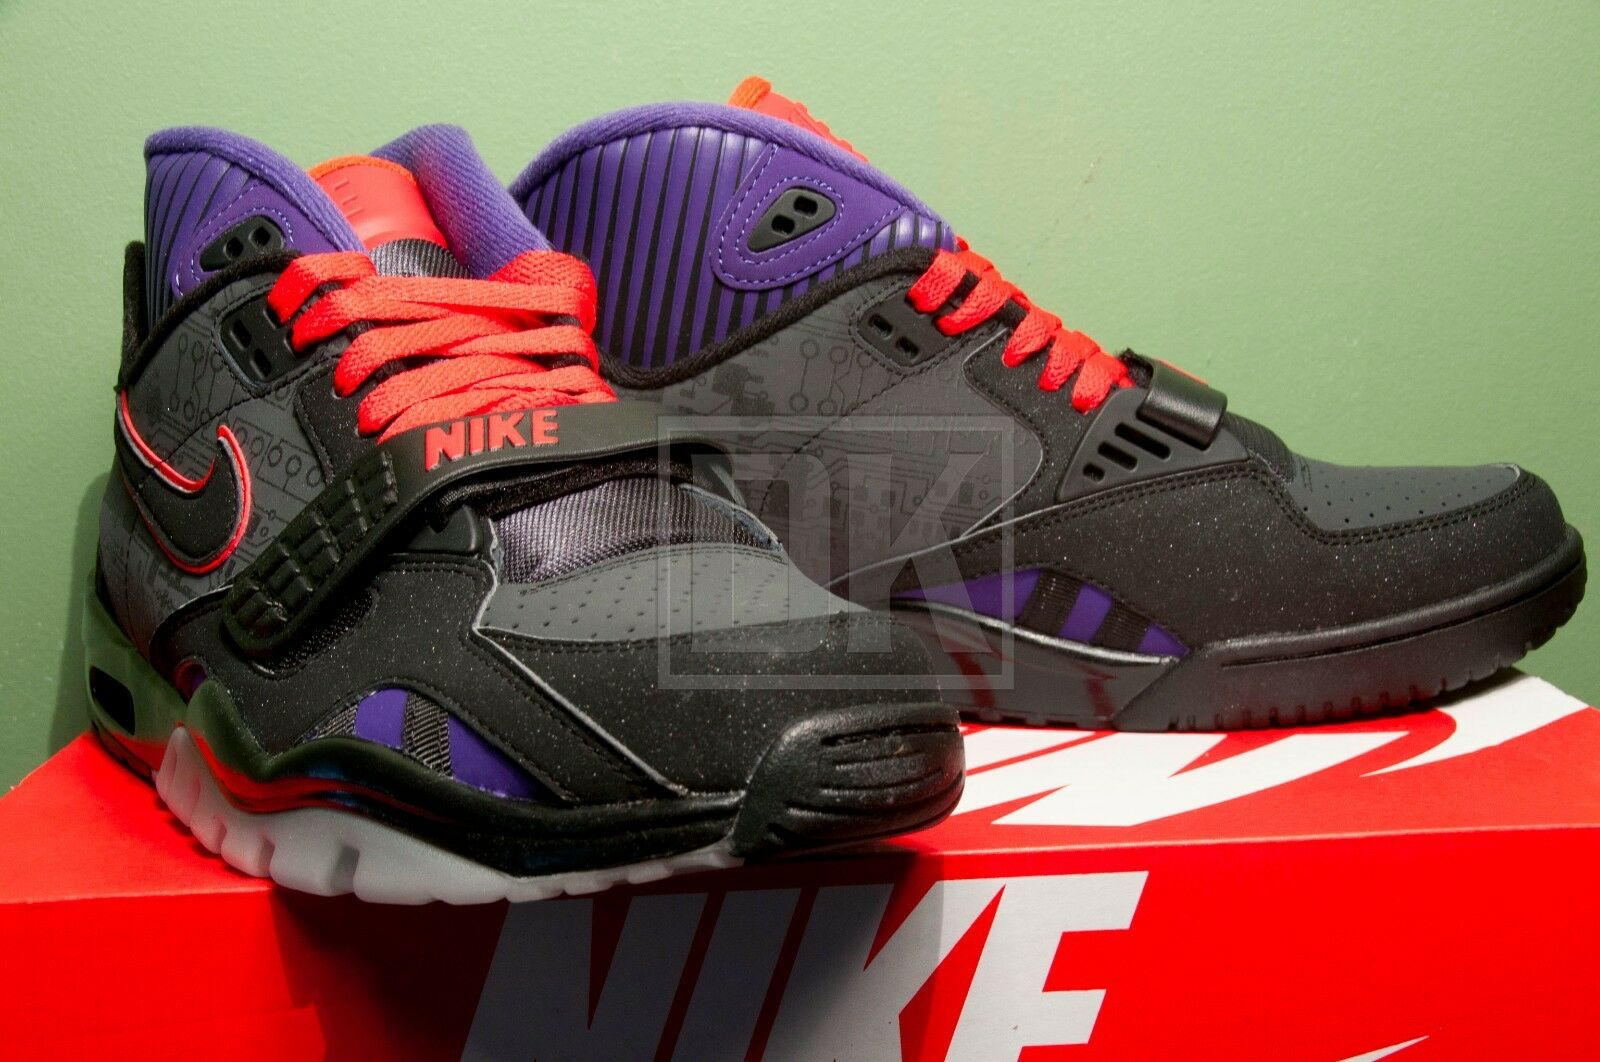 NIKE AIR TRAINER SC II 2 PRM QS MEGATRON Comfortable and good-looking